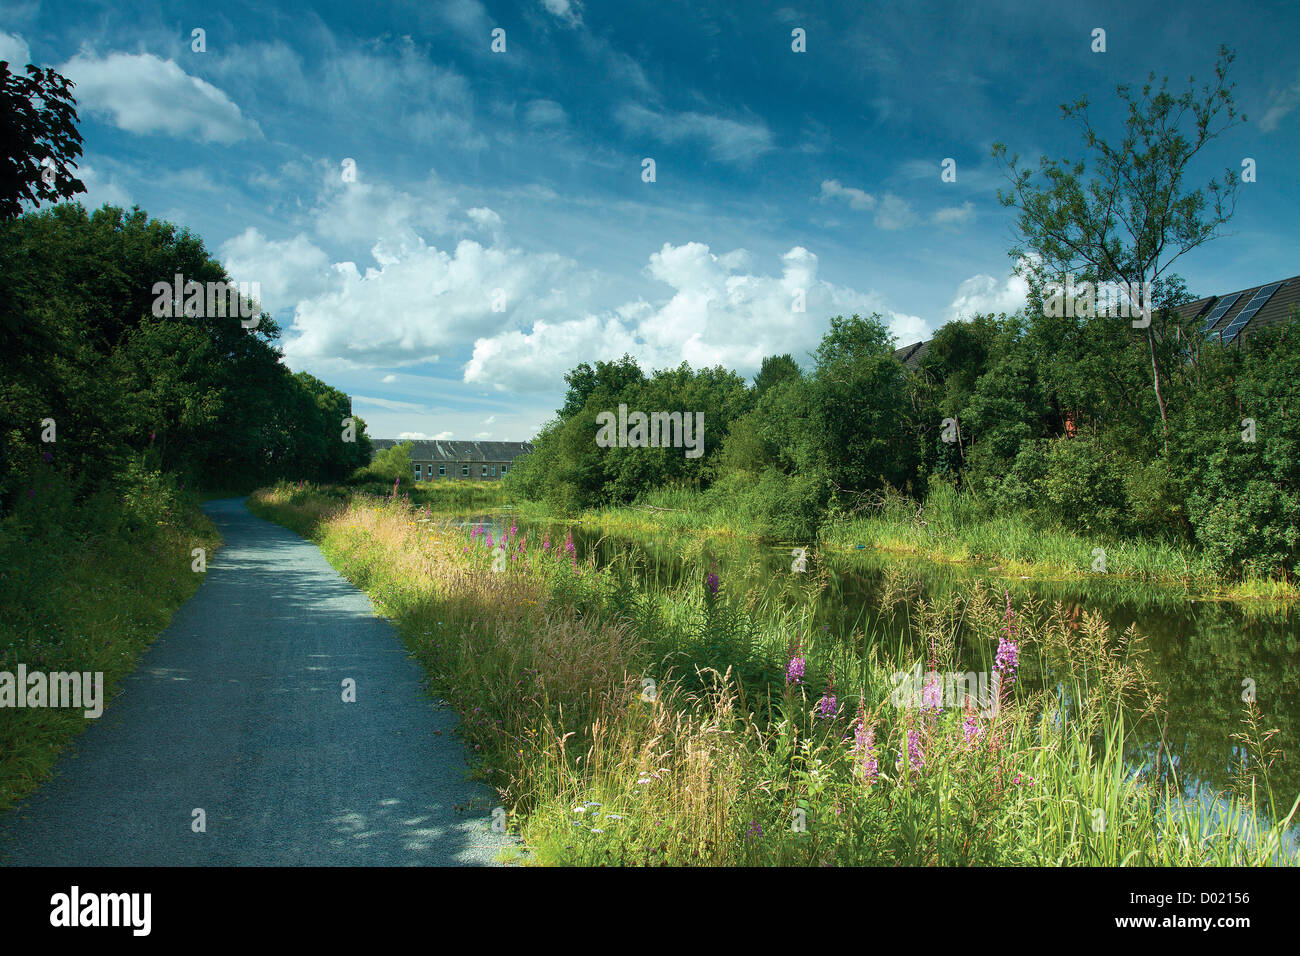 The Forth & Clyde Canal at Maryhill, Glasgow - Stock Image